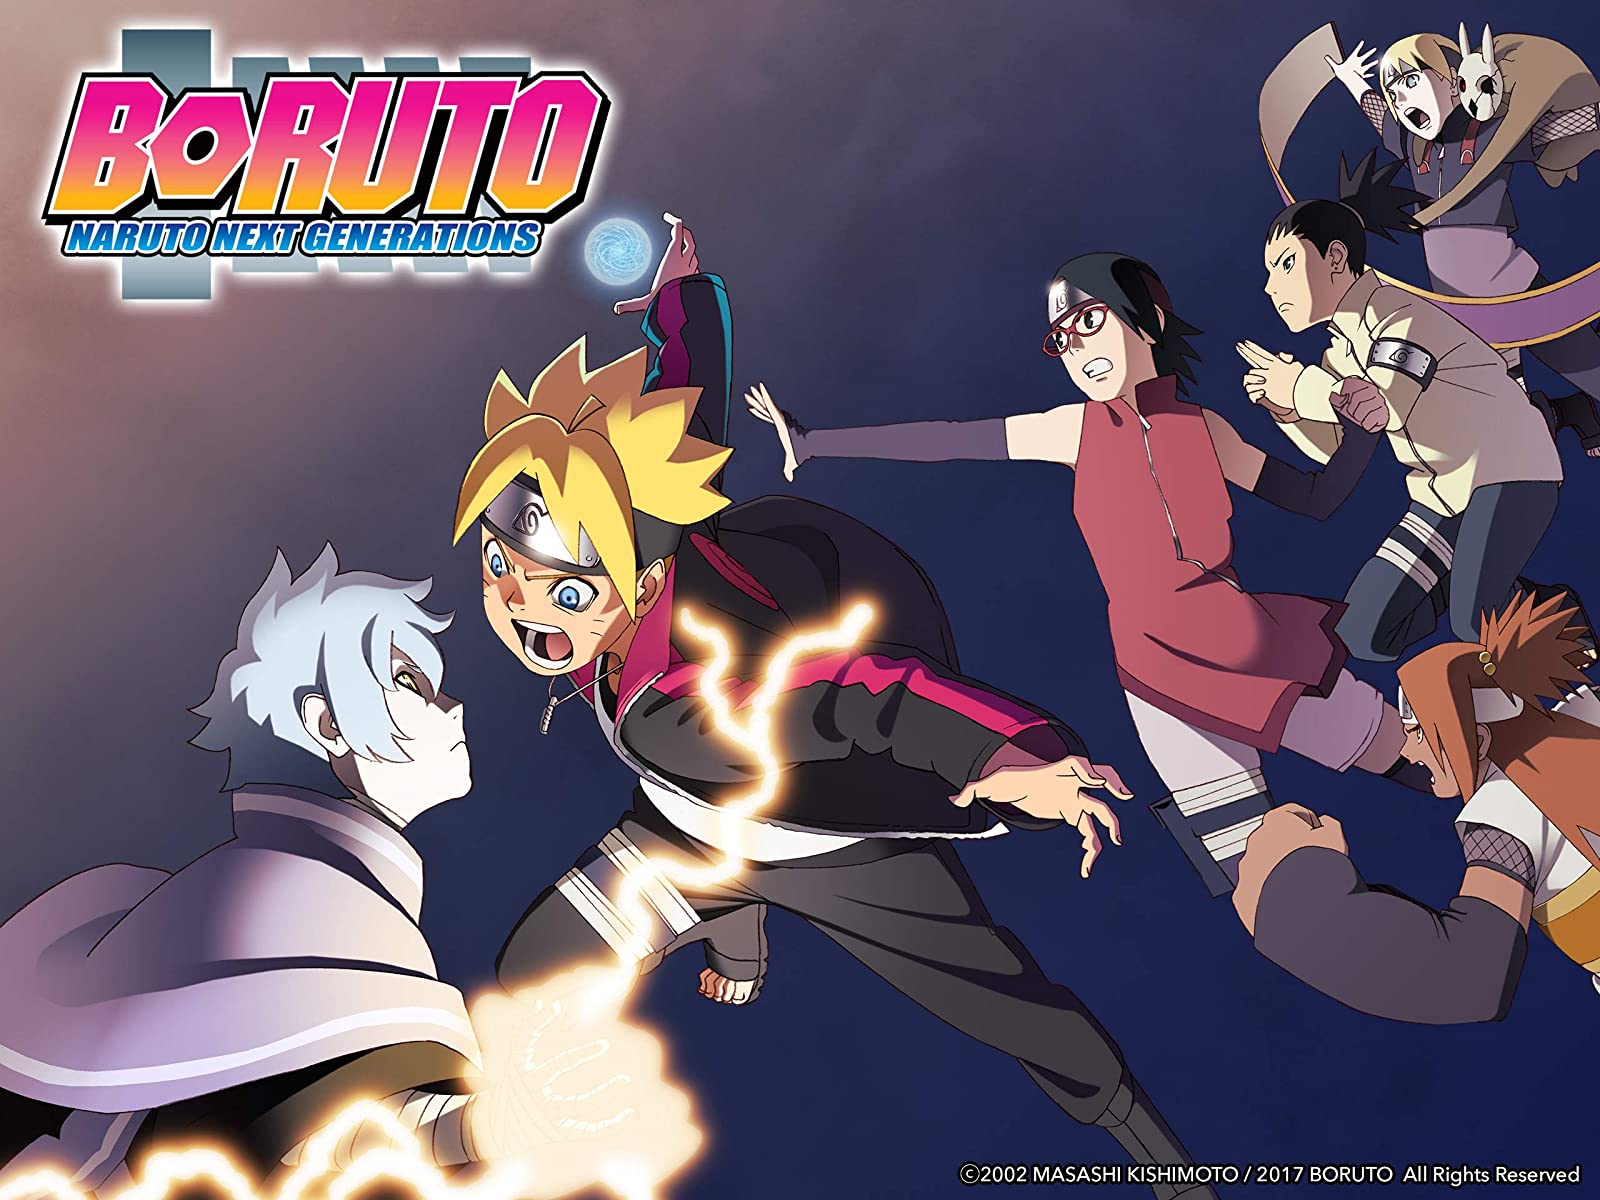 Watch Boruto Naruto Next Generations Set 001 Prime Video If you have any trouble with the video, check out our different video sources by clicking on the link below. watch boruto naruto next generations